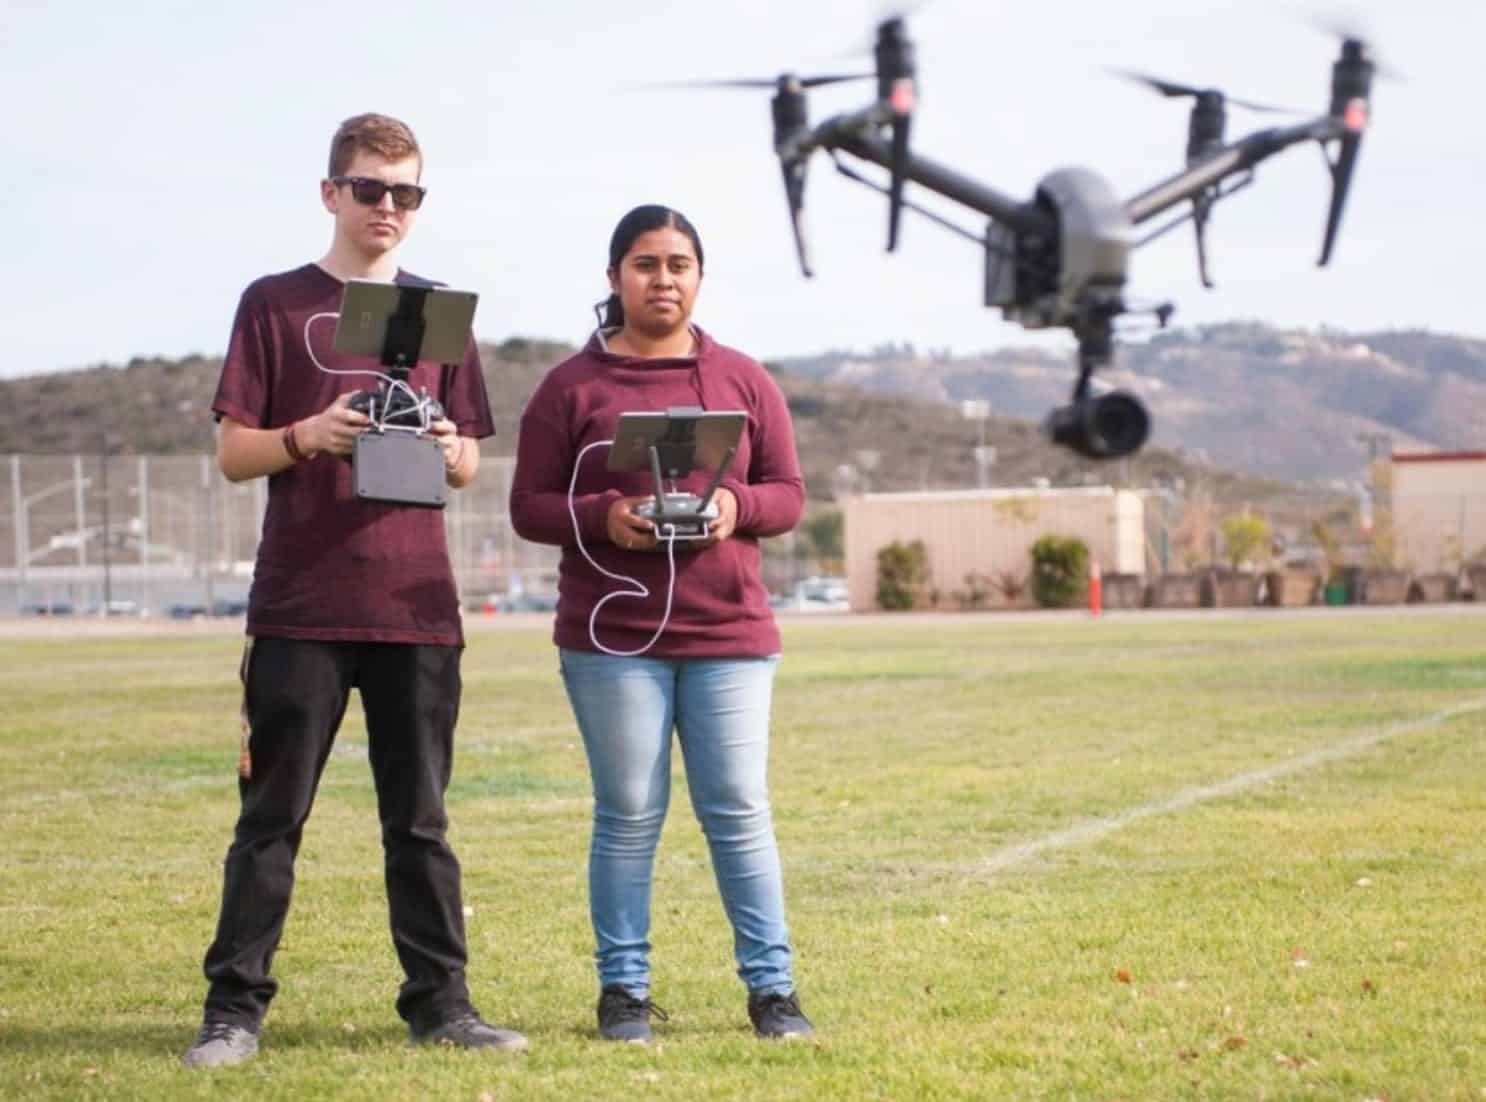 Three colleges in Southern California have been selected for FAA drone initiative